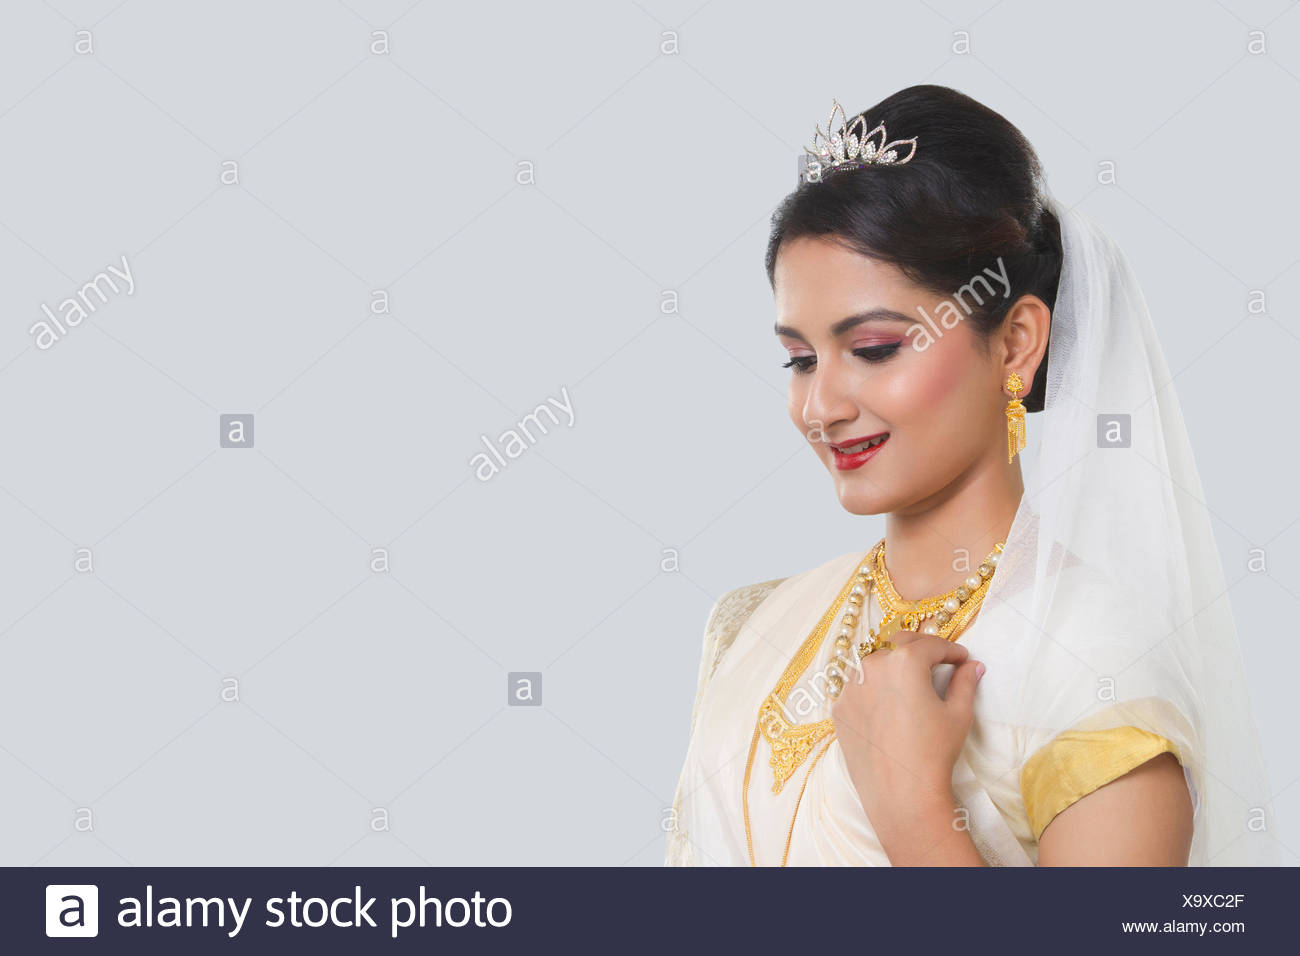 Shy South Indian Bride Stock Photos & Shy South Indian Bride Stock ...